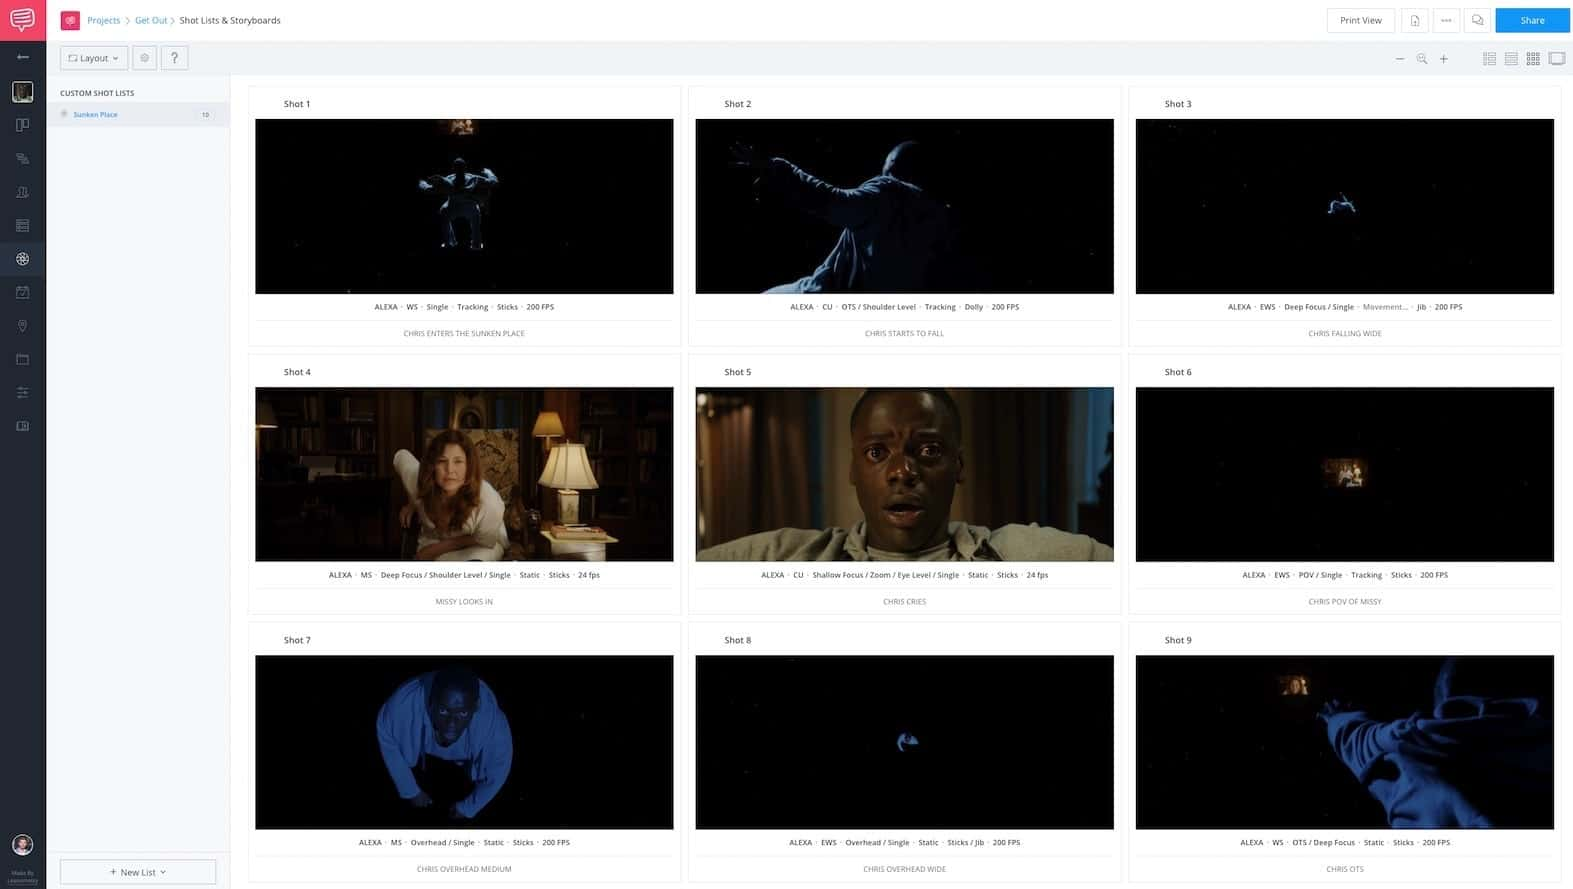 Video Frame Rates - Get Out - StudioBinder Storyboard